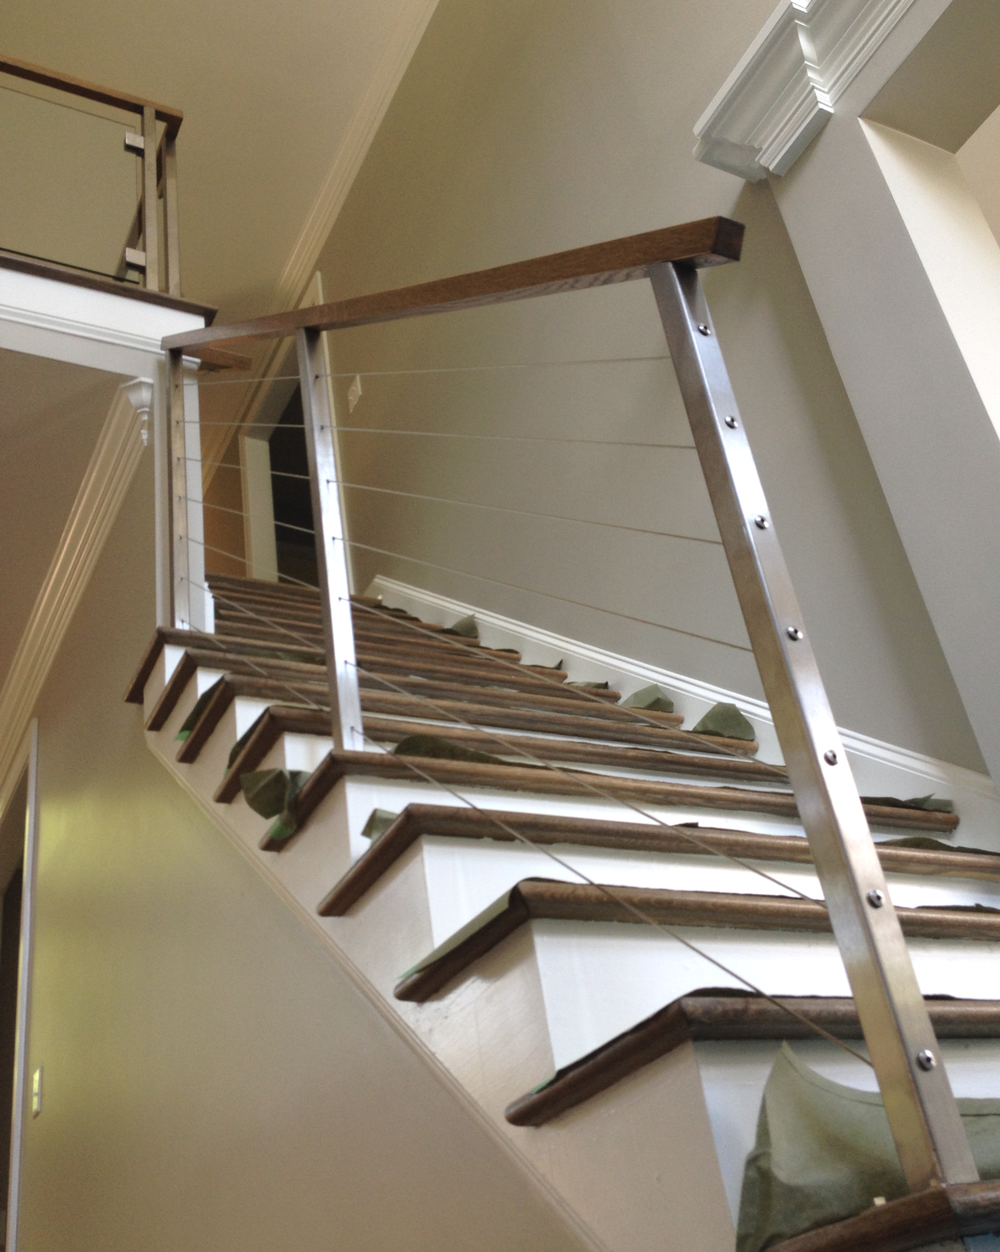 Stainless steel and wood cable railing